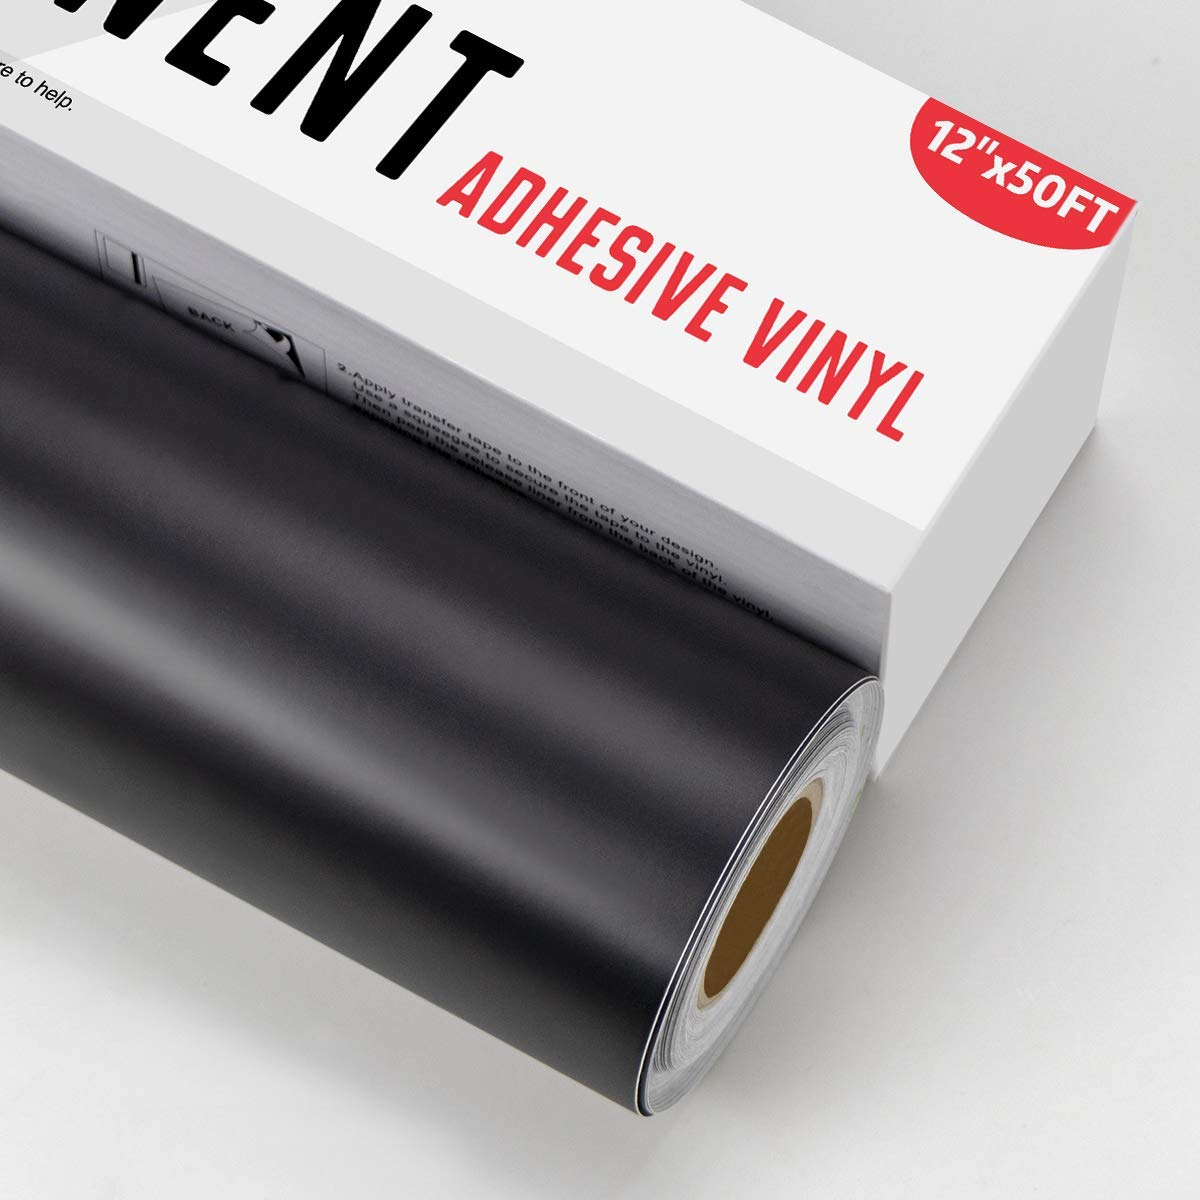 YRYM HT Black Permanent Adhesive Vinyl Roll - 12 x 50 FT for Signs, Scrapbooking, Adhesive Vinyl Sheets for Cricut, Silhouette and Cameo Cutters